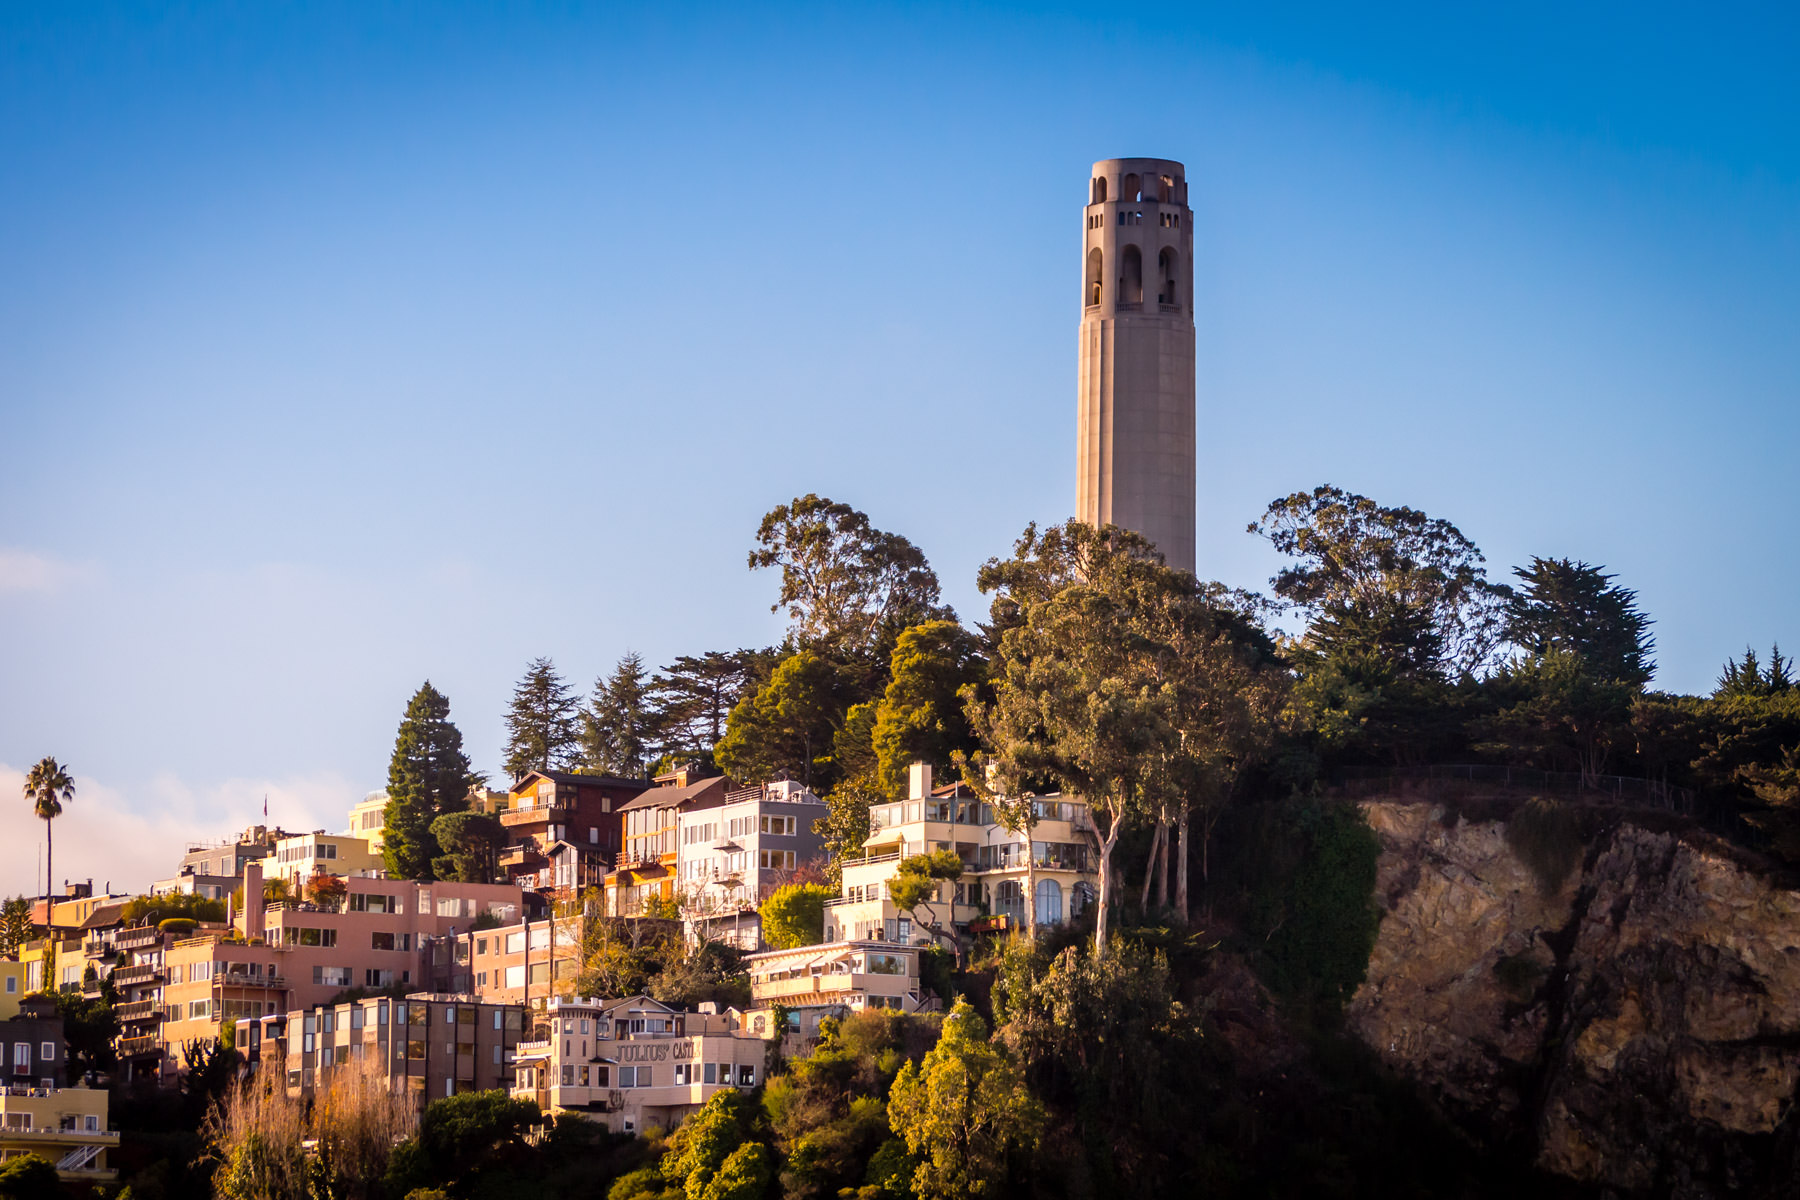 San Francisco's 210-foot-tall Coit Tower rises above the surrounding Telegraph Hill neighborhood.